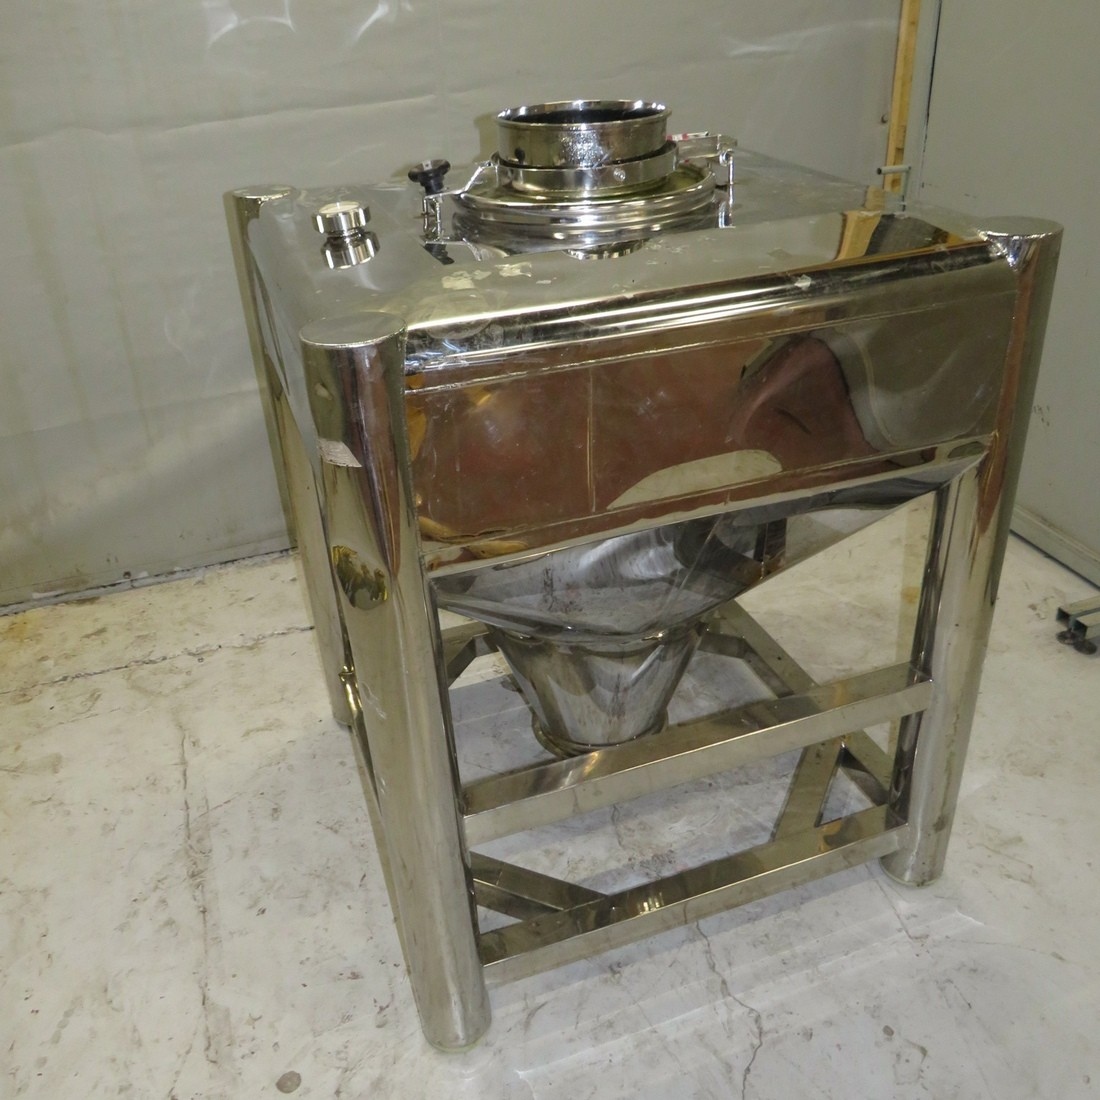 R11CB182 Stainless steel container BSIPM - Type NGV445L - 455 liters